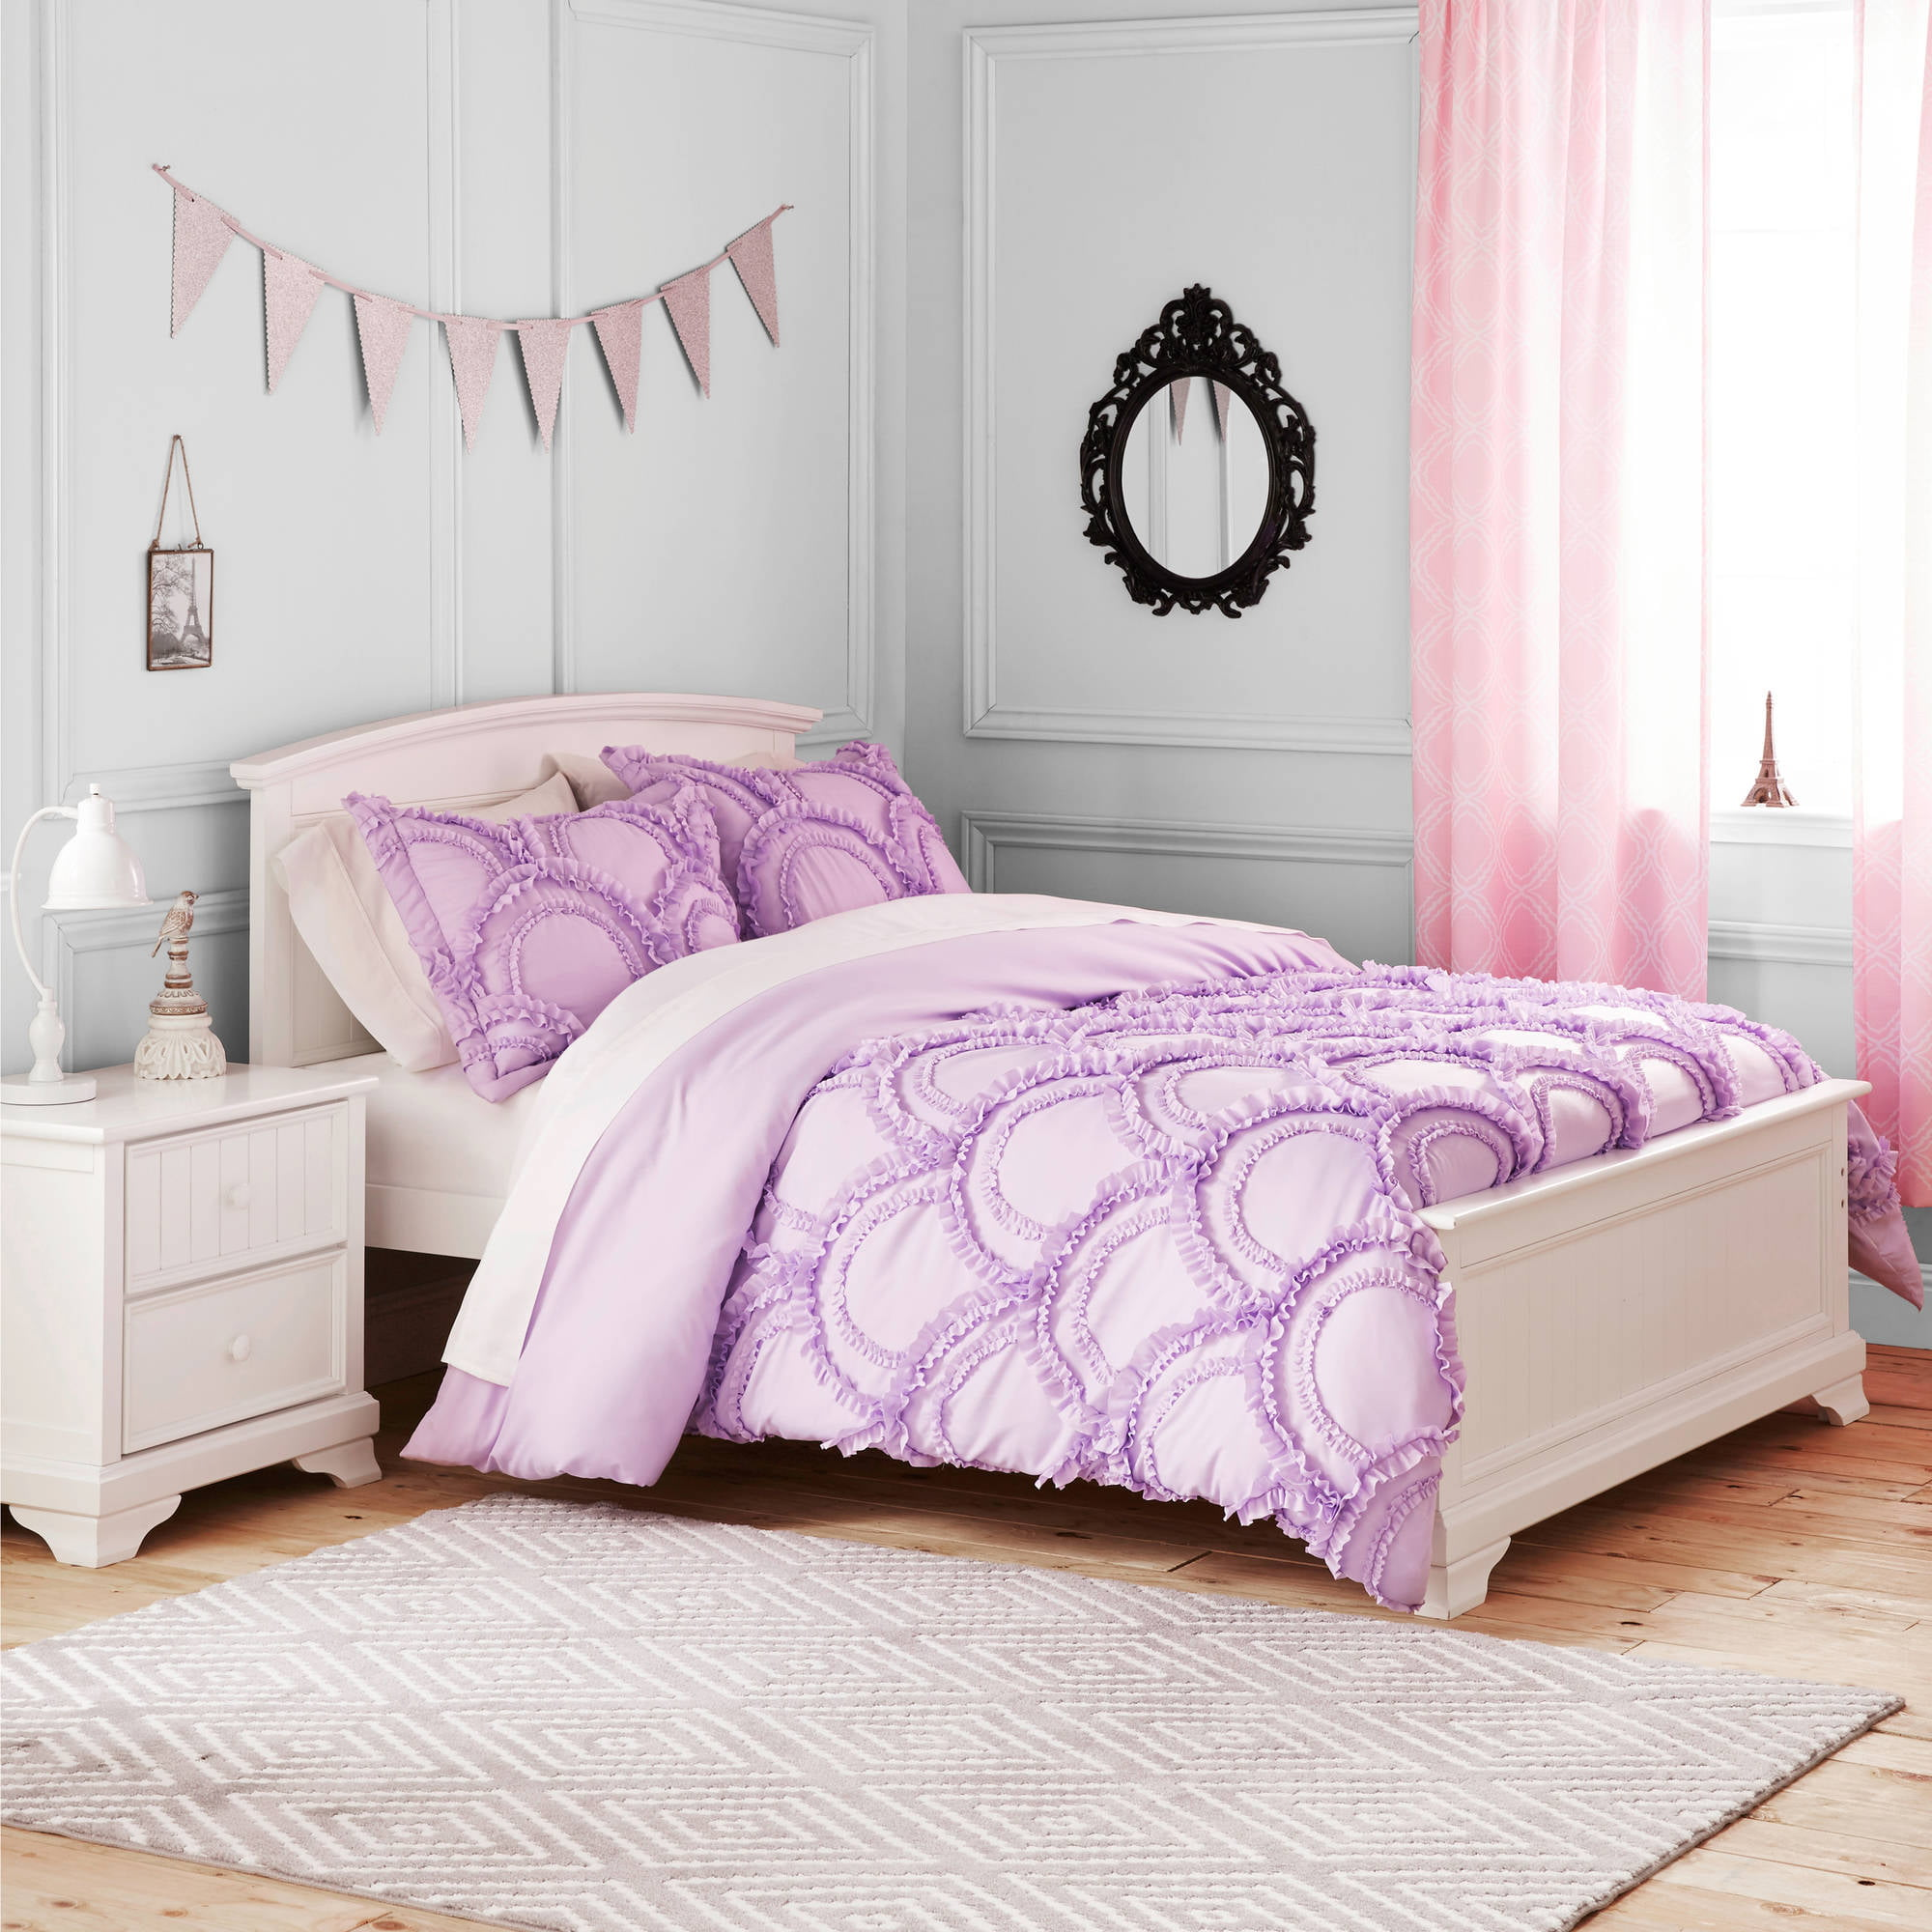 Better Homes And Gardens Kids Ruffle Fans Bedding Comforter Set    Walmart.com